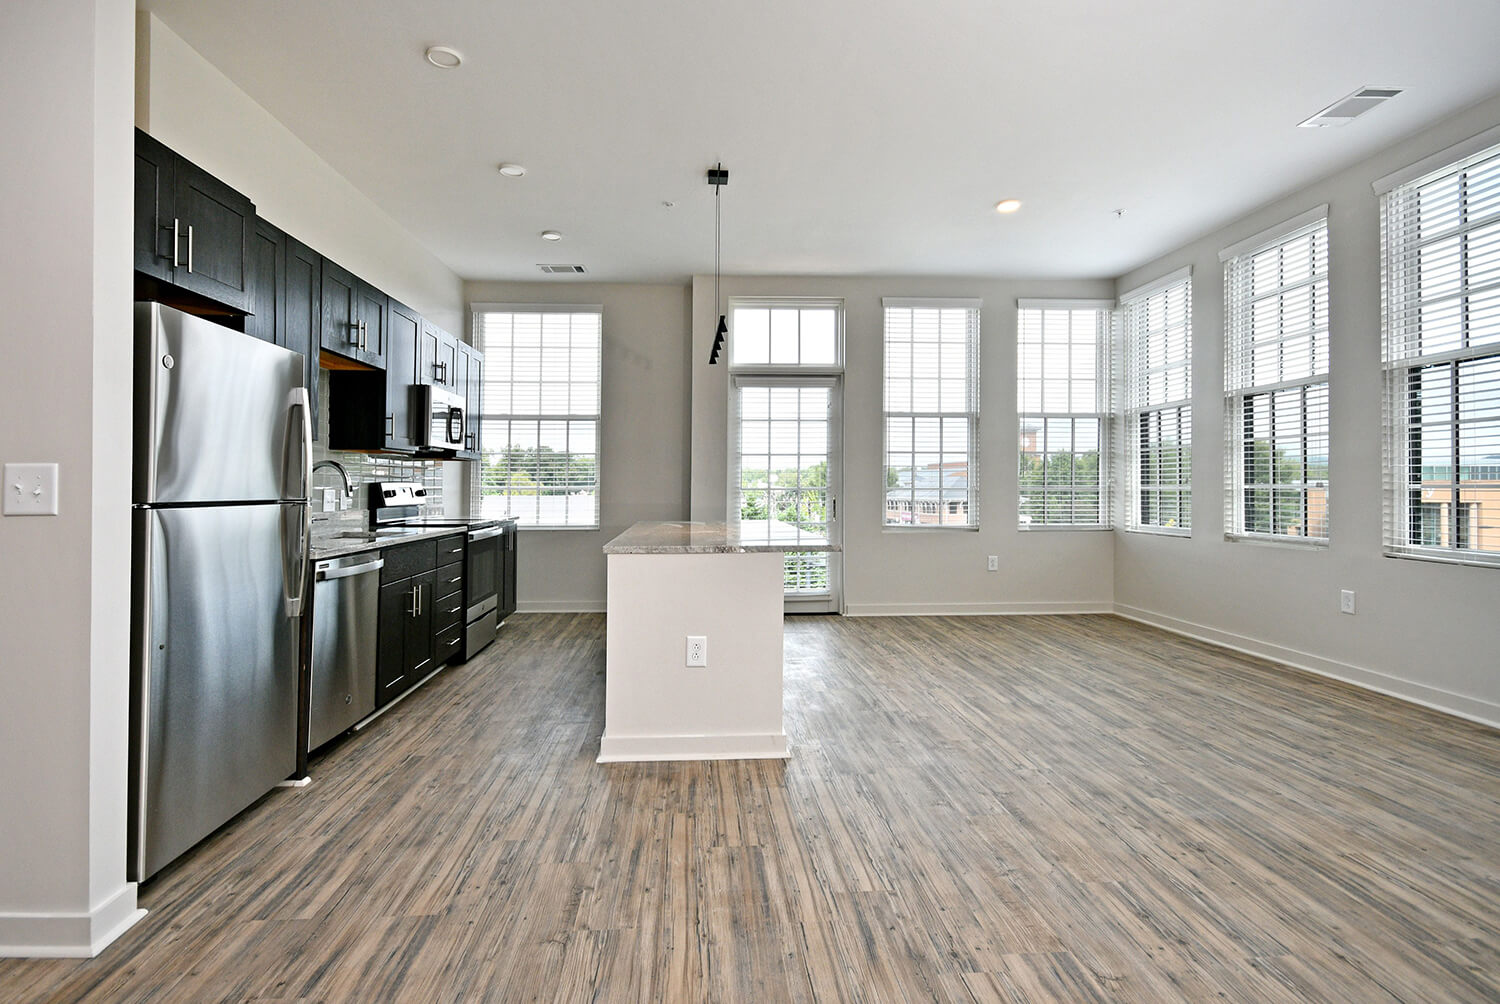 Canvas Lofts - Apartments in Greenville, SC